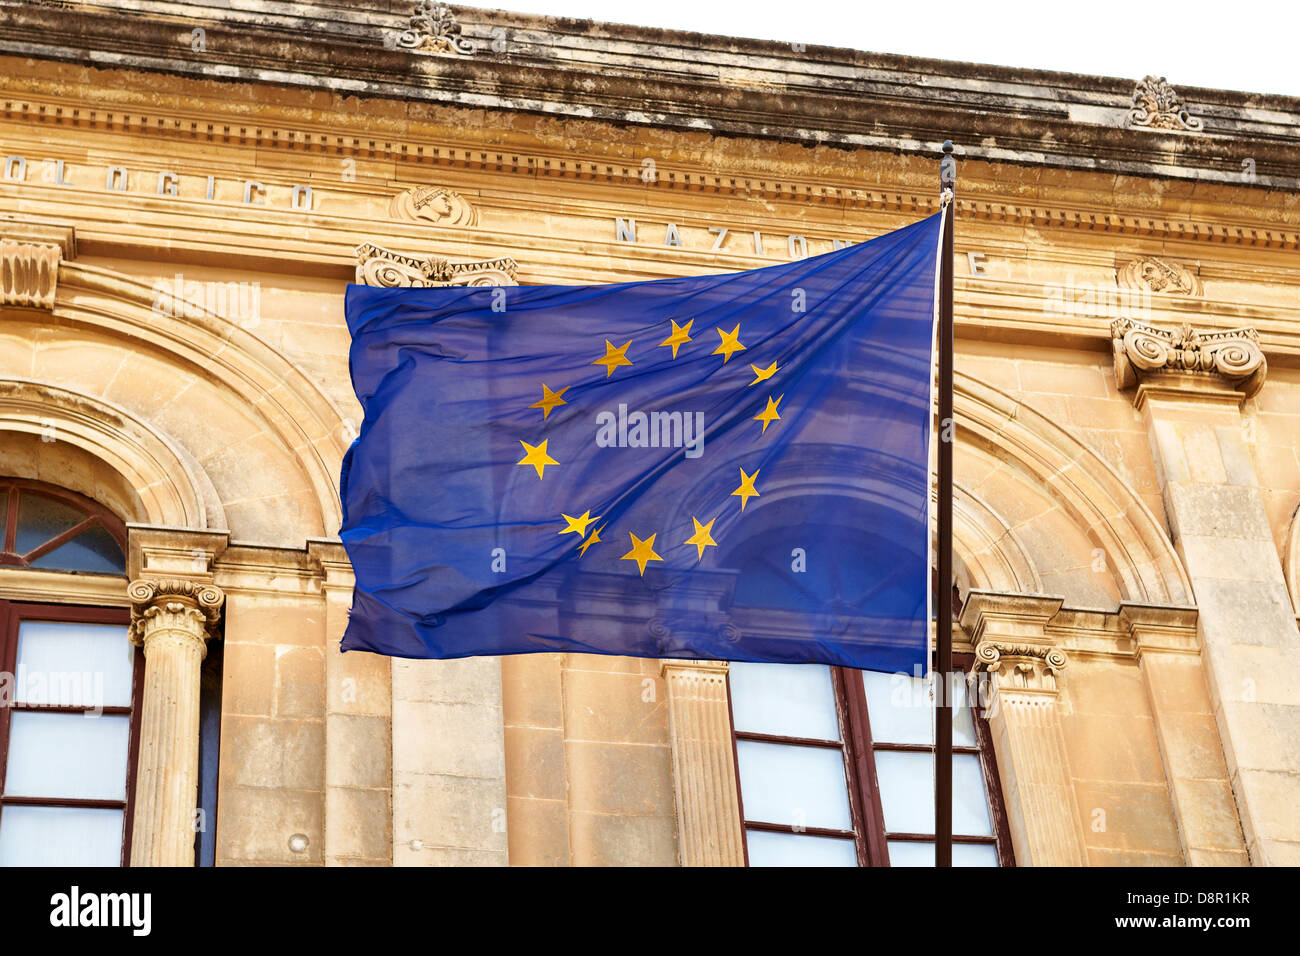 Flag of the european union, Siracusa, Sicily, Italy - Stock Image